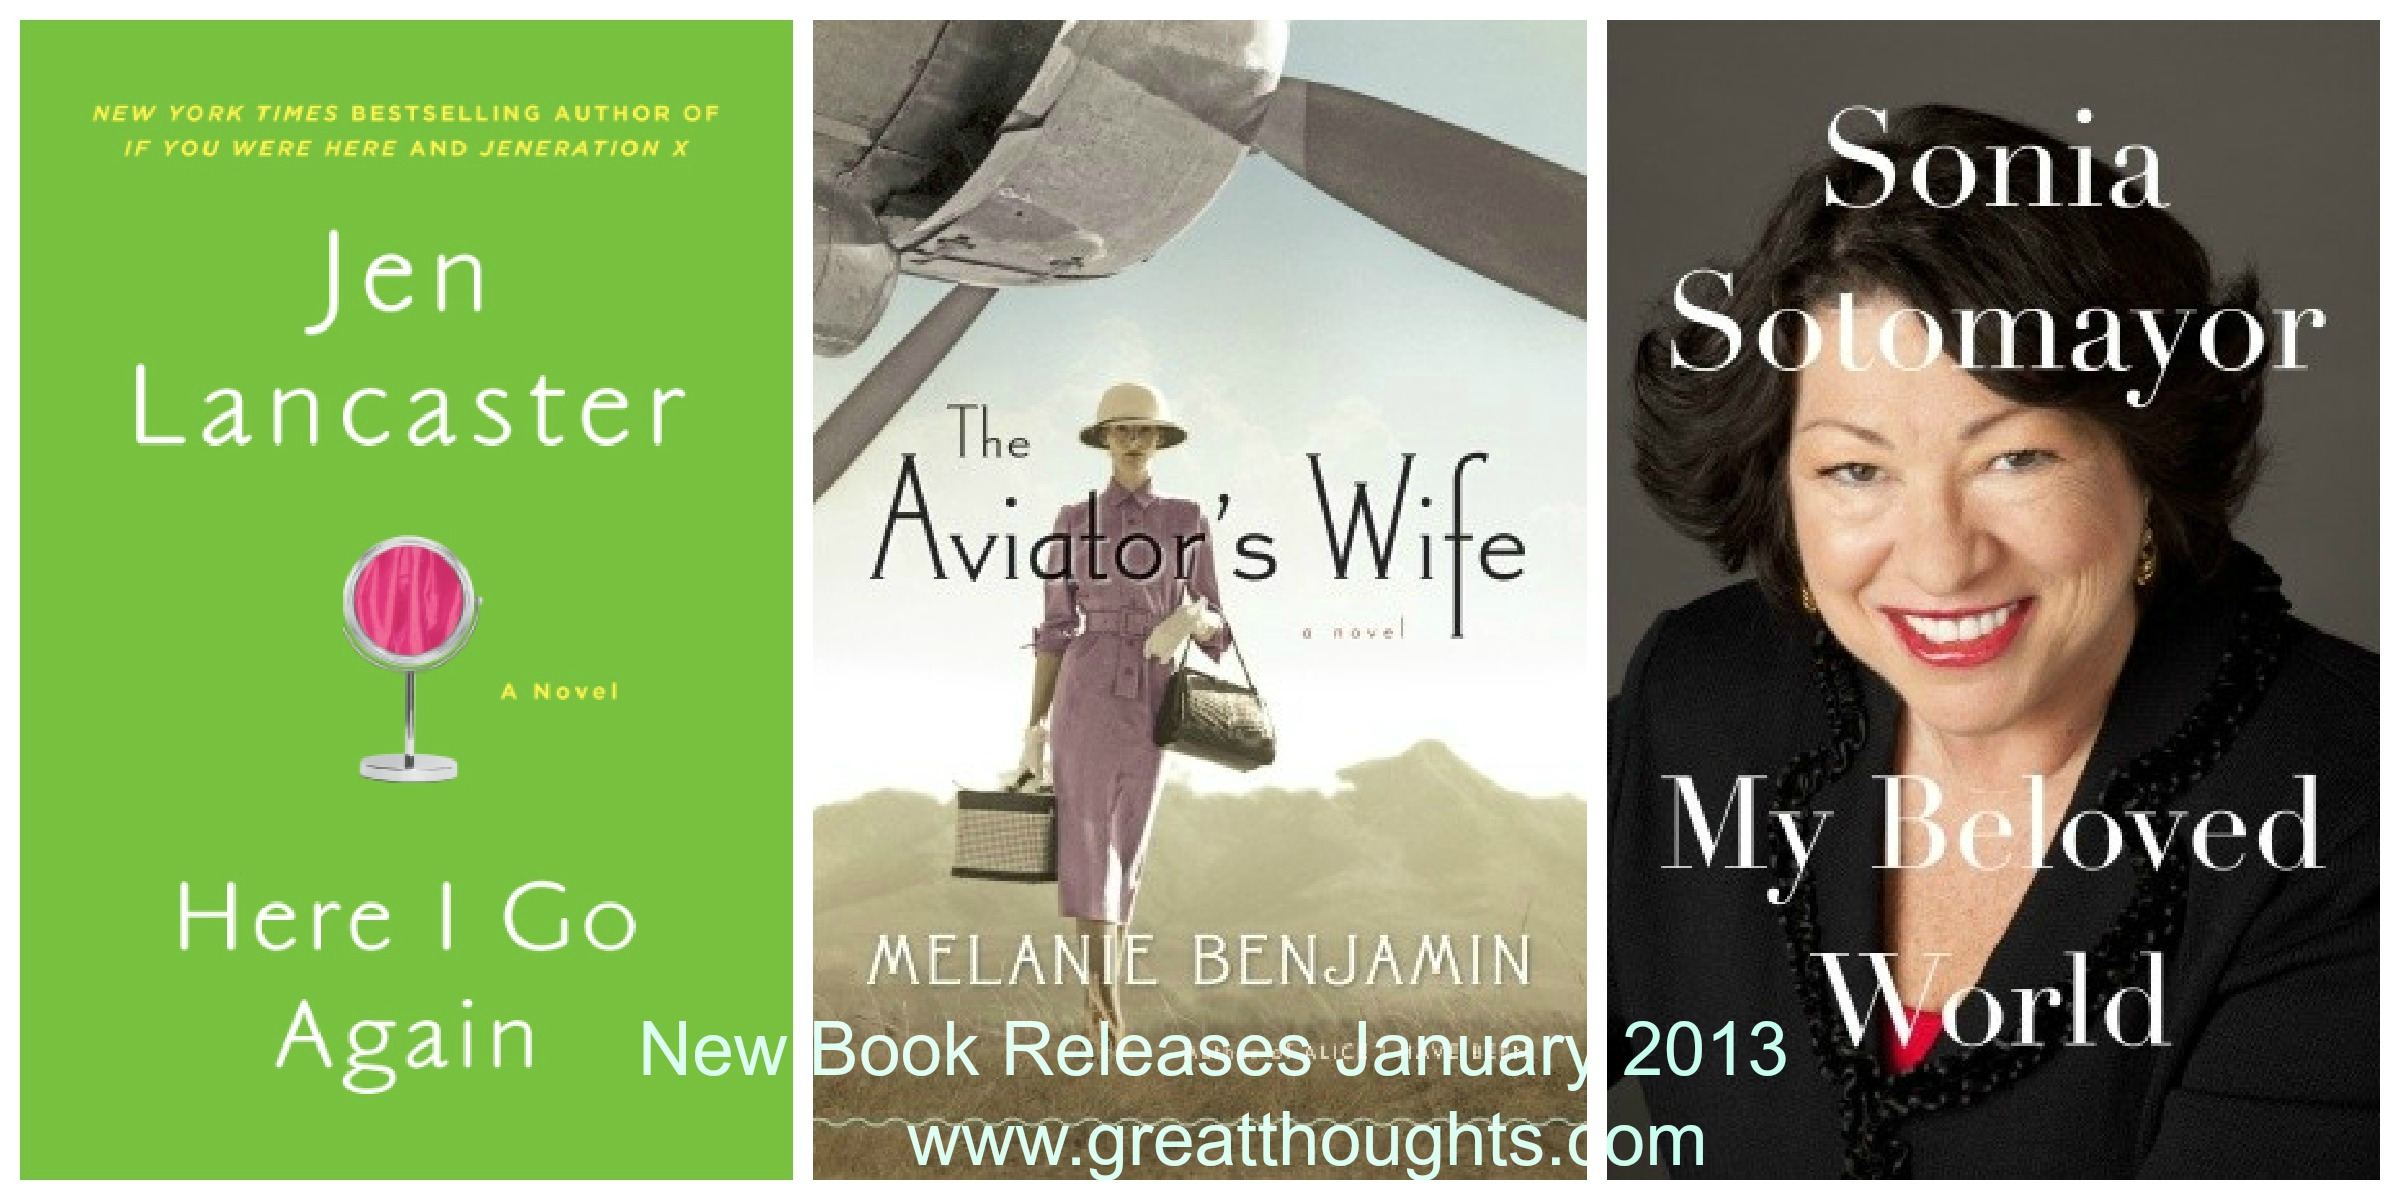 New Book Releases January 2013